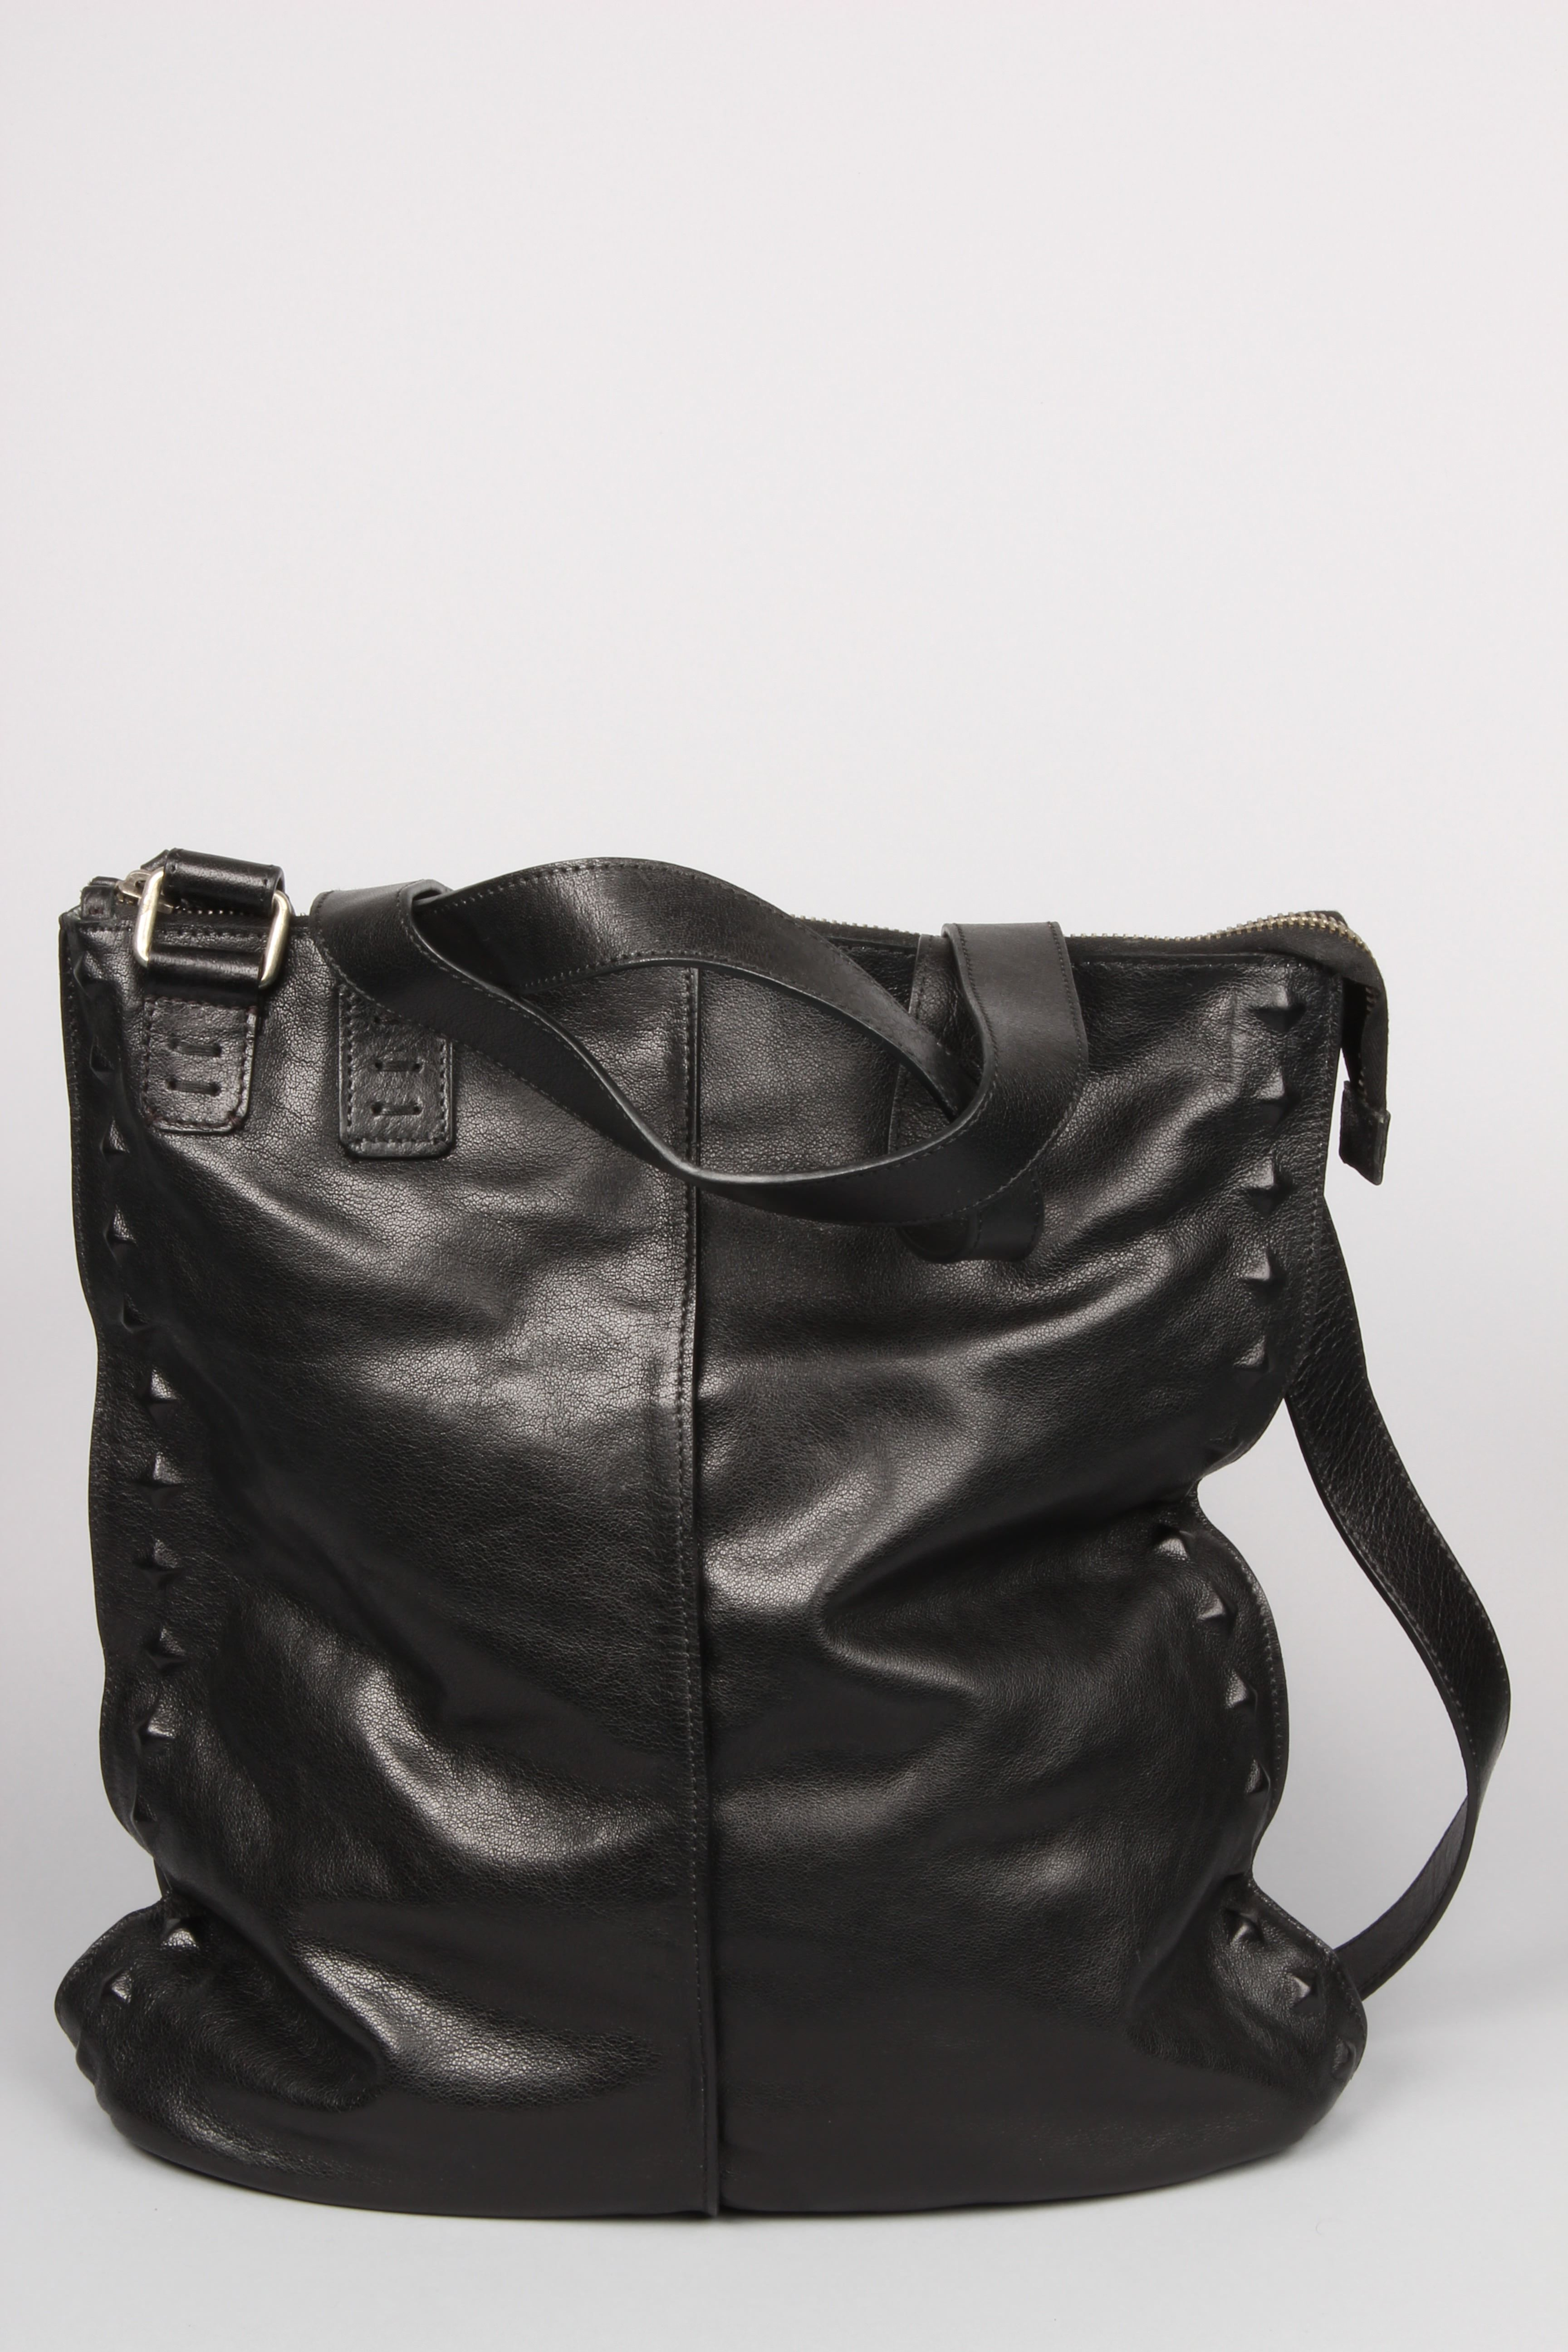 Rehard black leather bag  49e47fbe00f4a